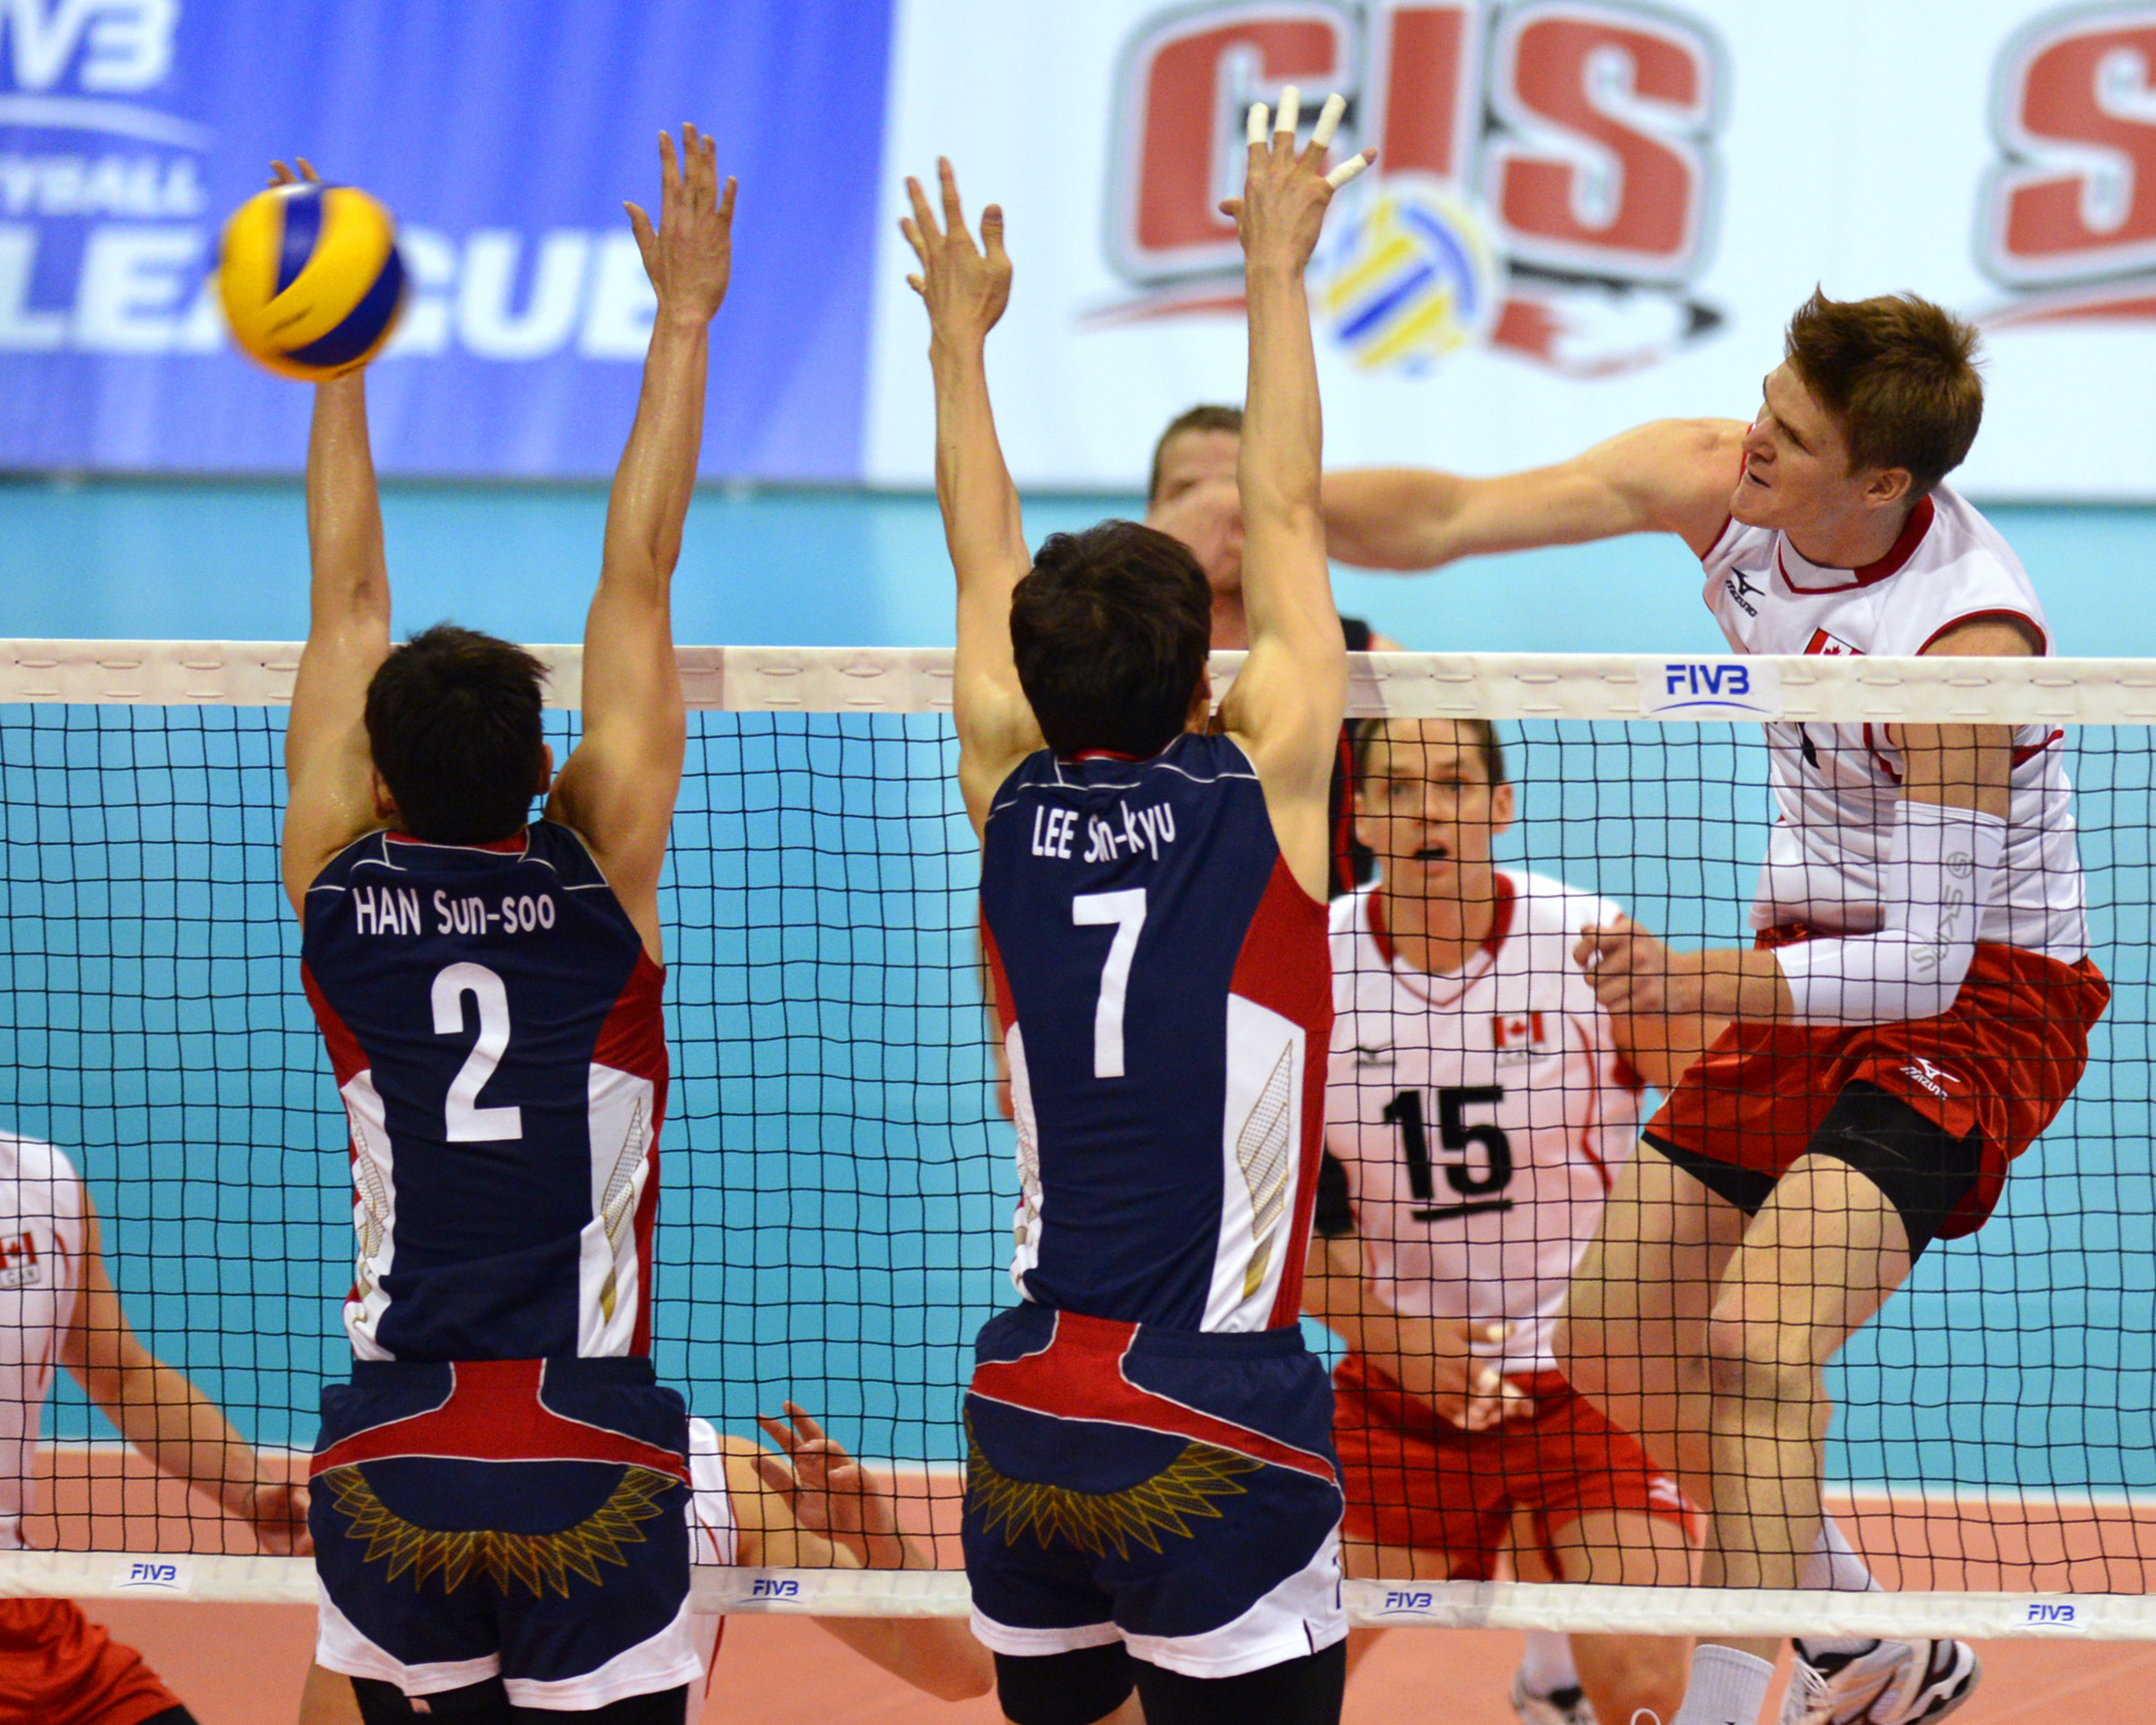 Gord Perrin with (probably) one of his 15 kills on the night Photo: FIVB, Phil MacCallum, Volleyball Canada